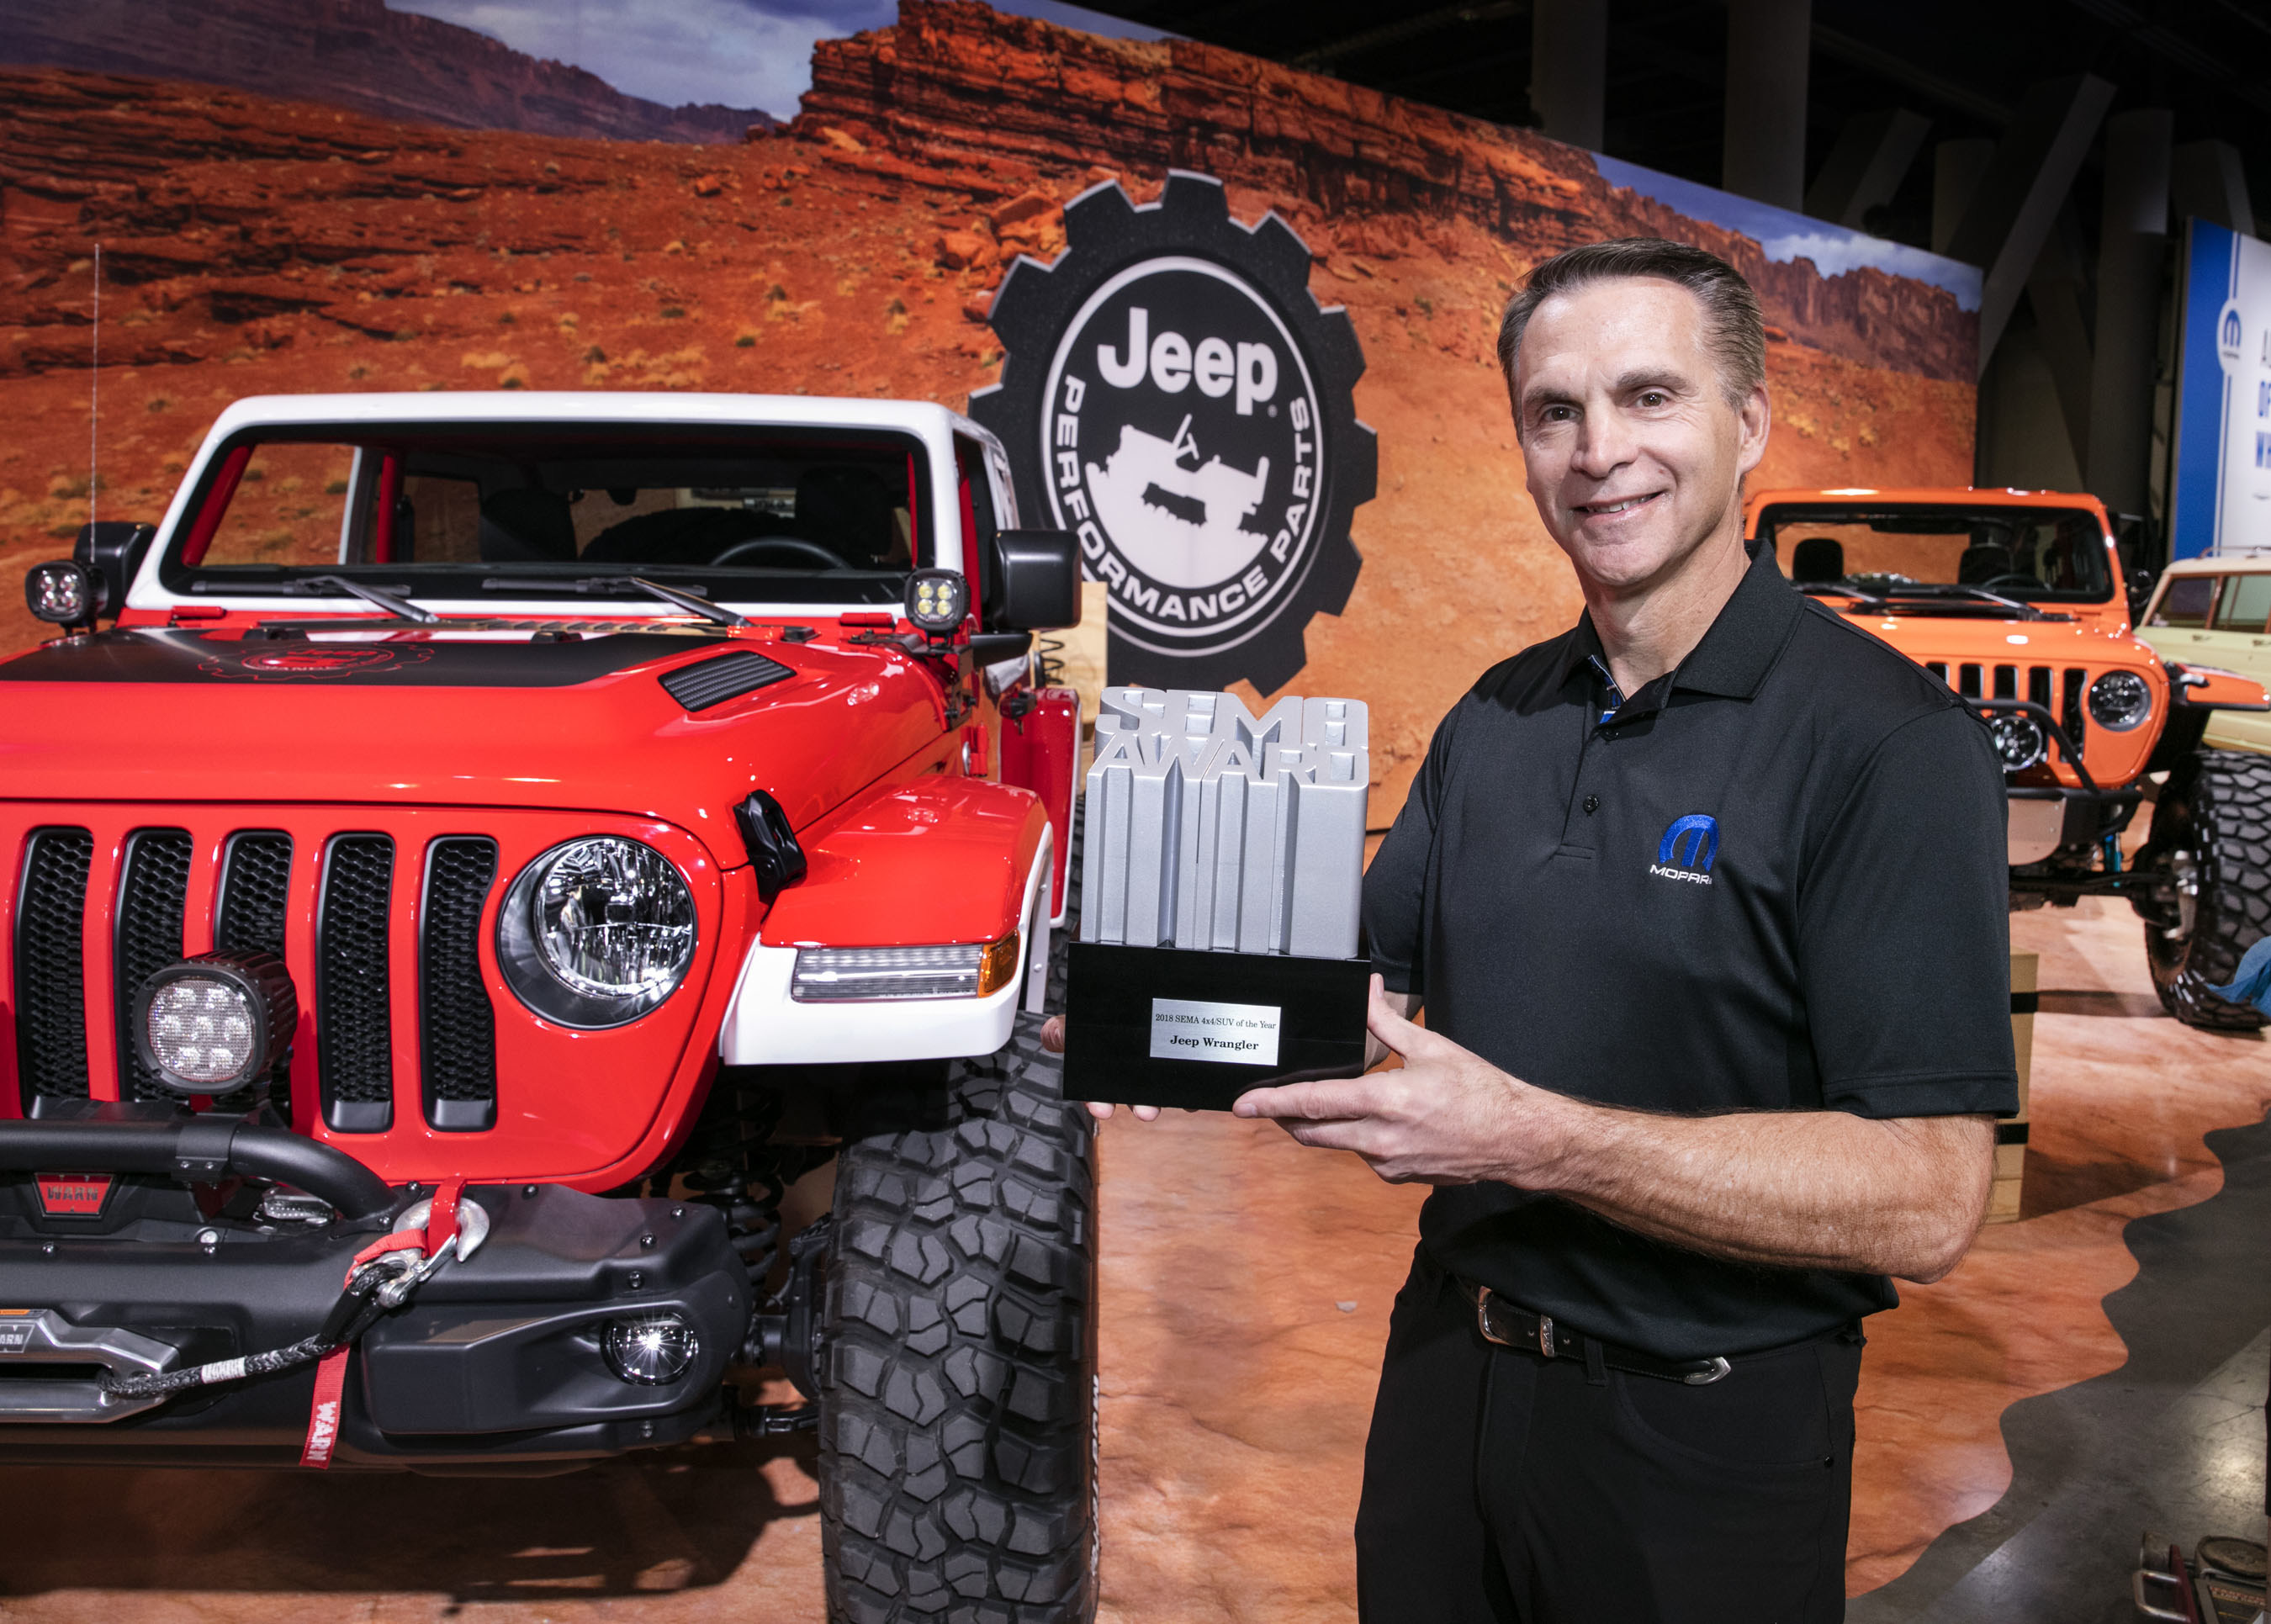 Jeep Wrangler Earns Ninth Consecutive Sema 44 Suv Of The Year Expo Fca North America Celebrates With Specialty Equipment Market Association Show 4x4 Award Captured By